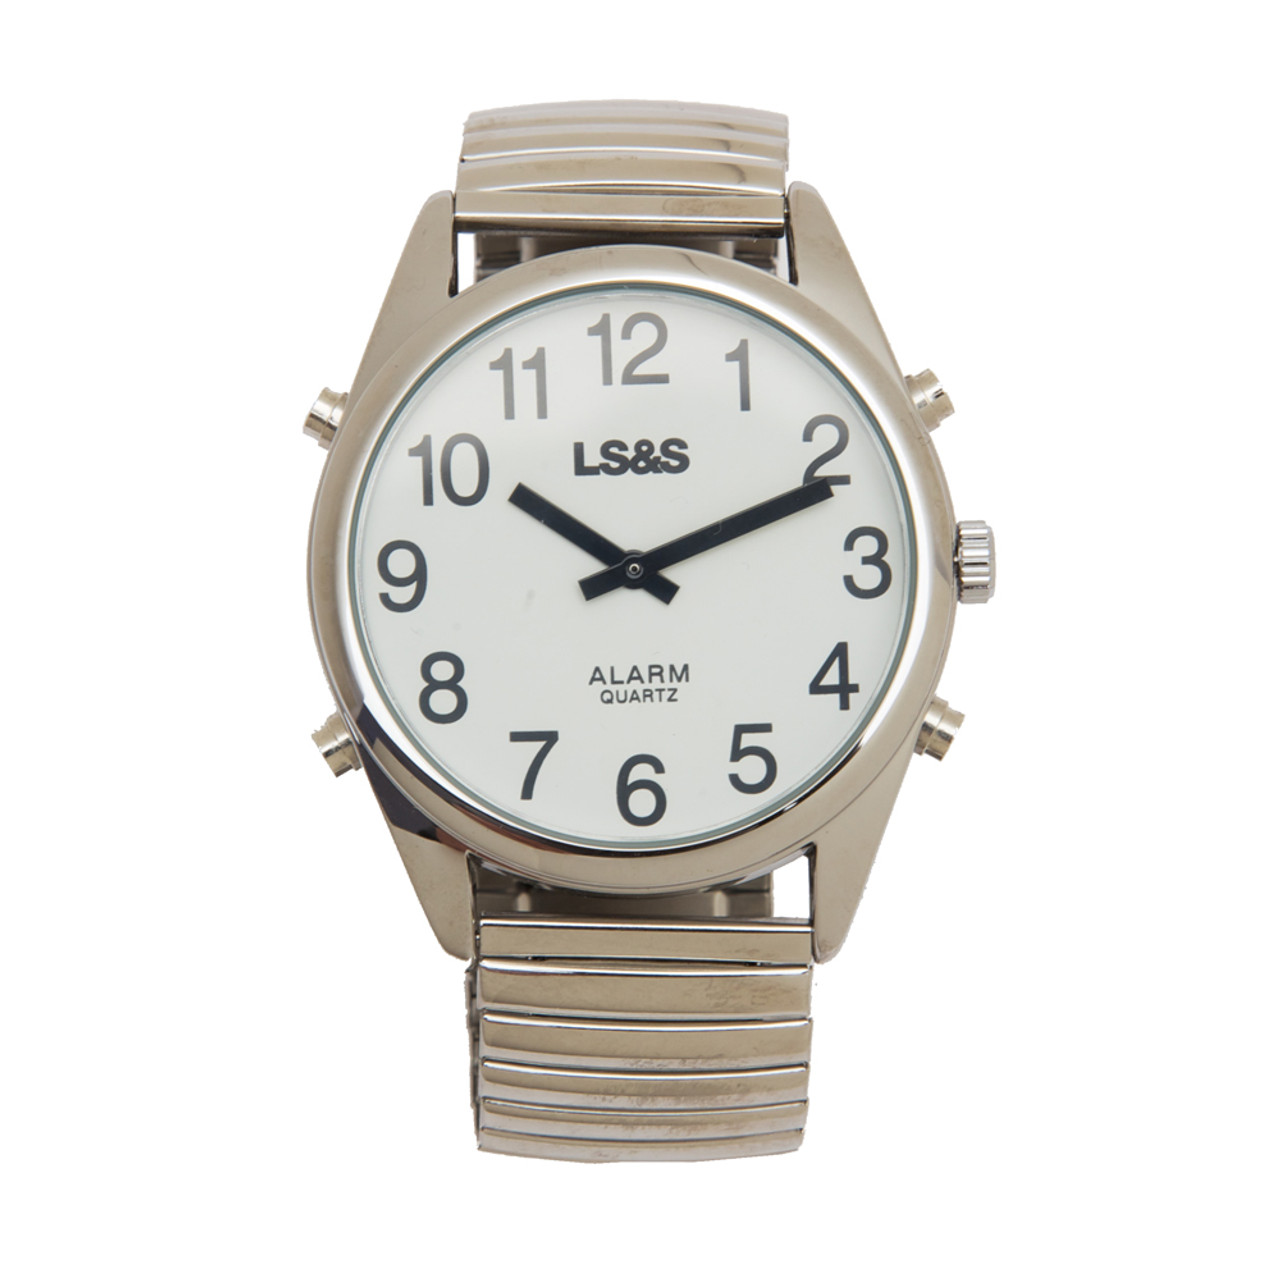 XL Talking Watch Calendar 4-Button Silver Case Silver Band White Face - Black Numbers